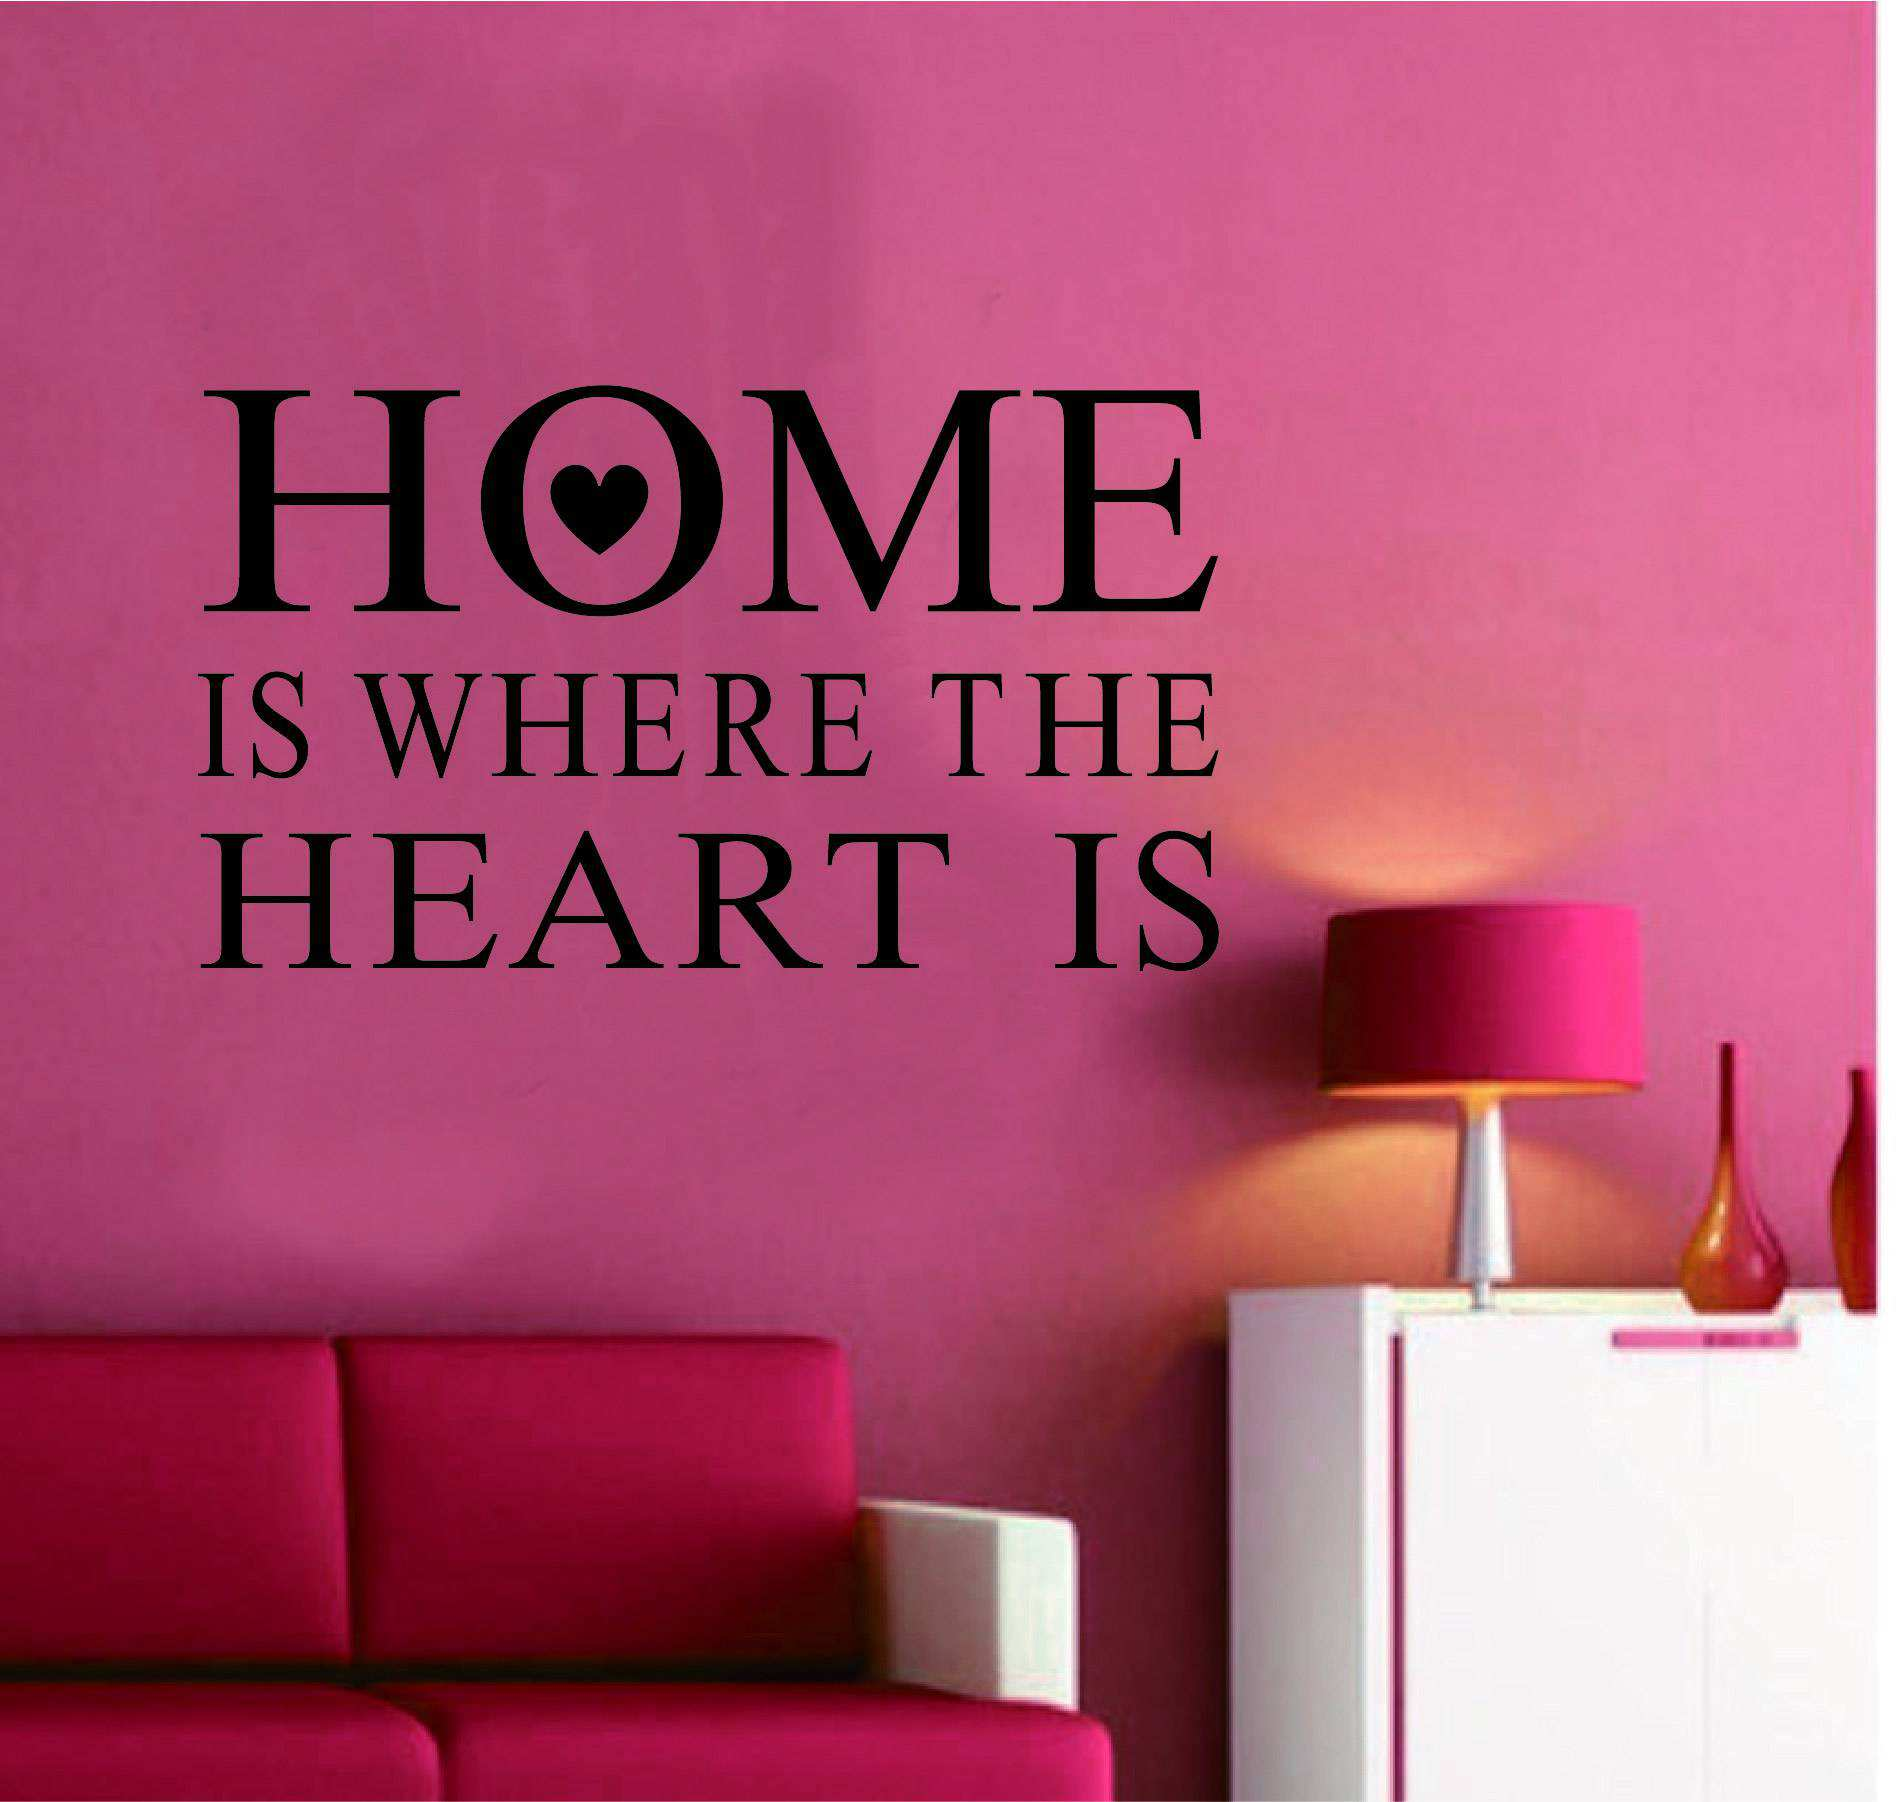 home is where the heart is quotes quotesgram. Black Bedroom Furniture Sets. Home Design Ideas